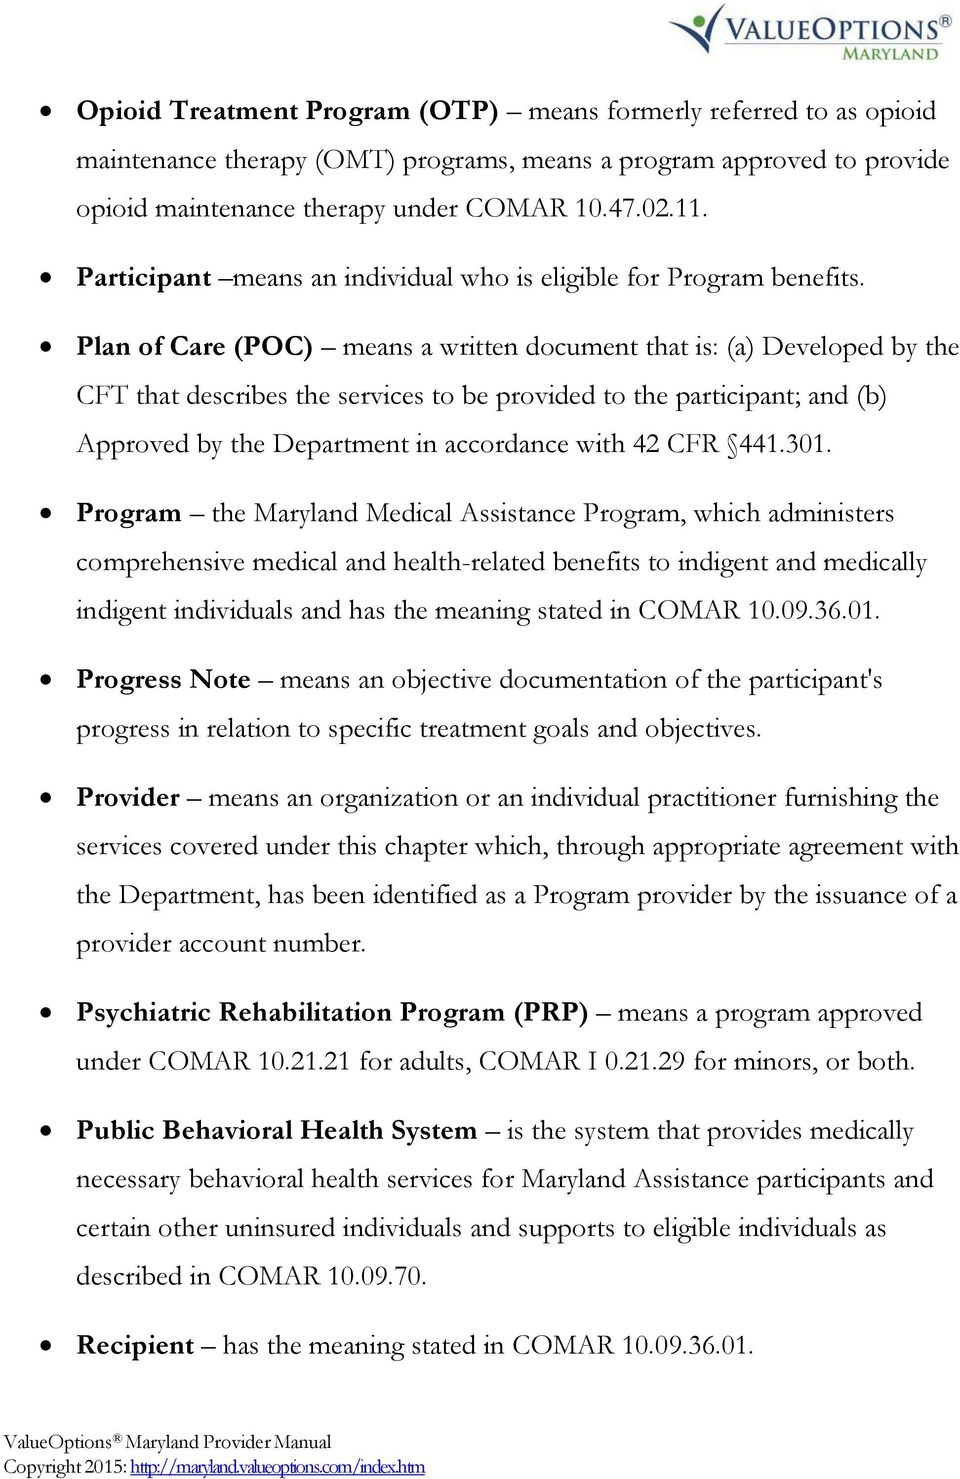 Plan of Care (POC) means a written document that is: (a) Developed by the CFT that describes the services to be provided to the participant; and (b) Approved by the Department in accordance with 42